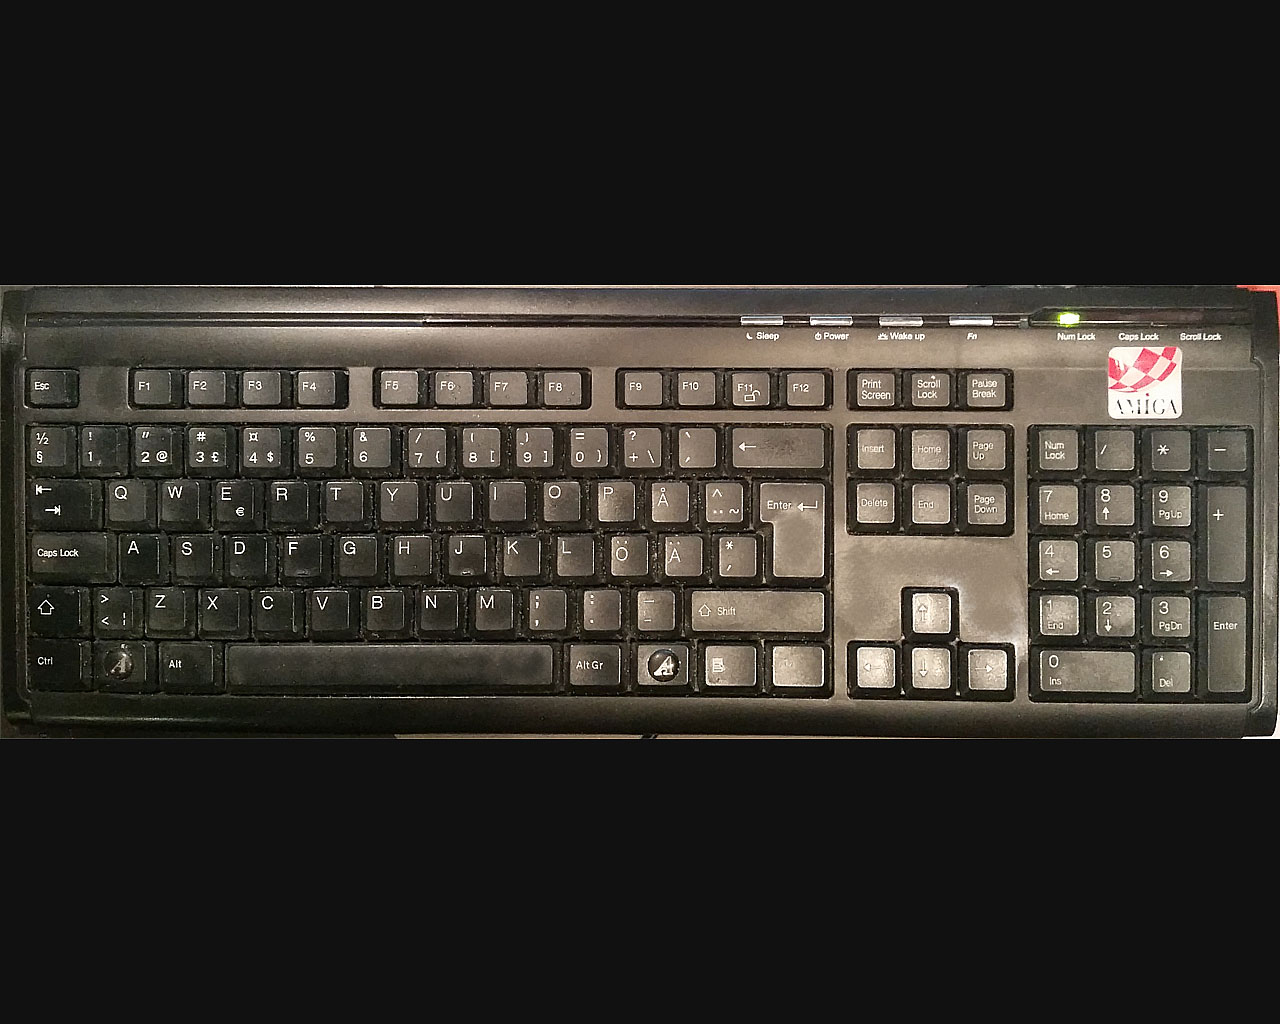 My Amiga keyboard